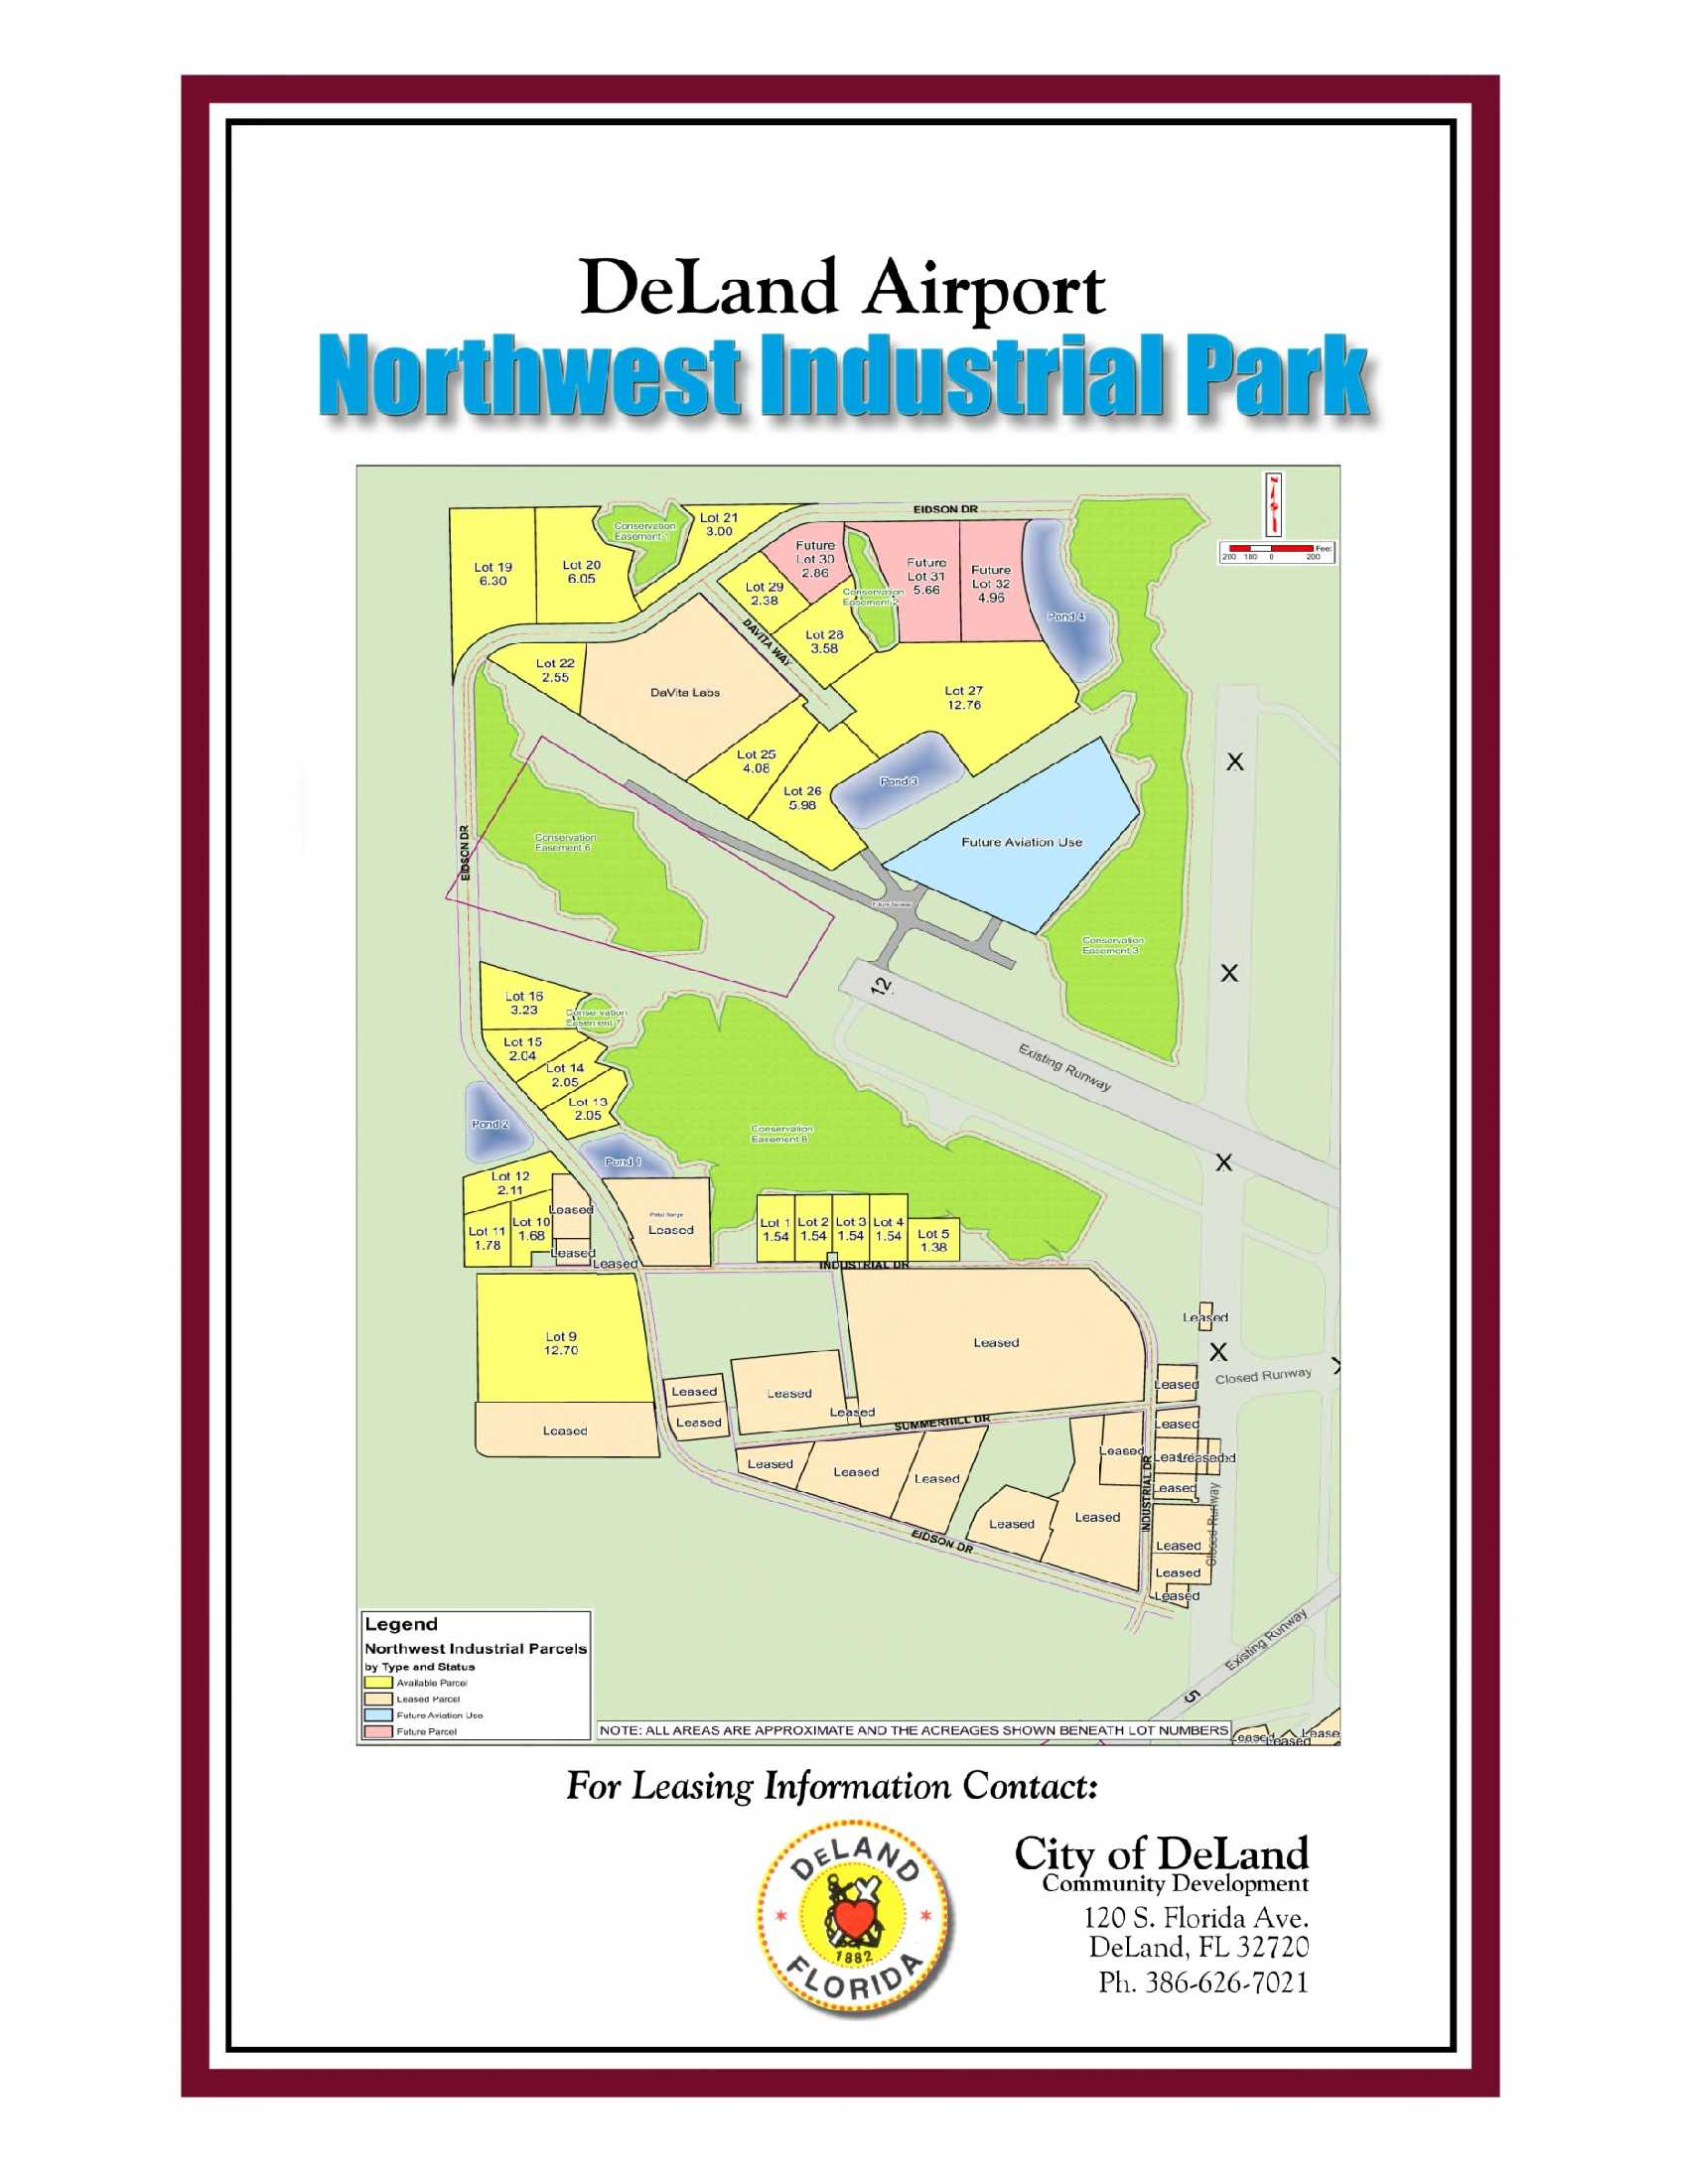 DeLand Airport Northwest Industrial Park